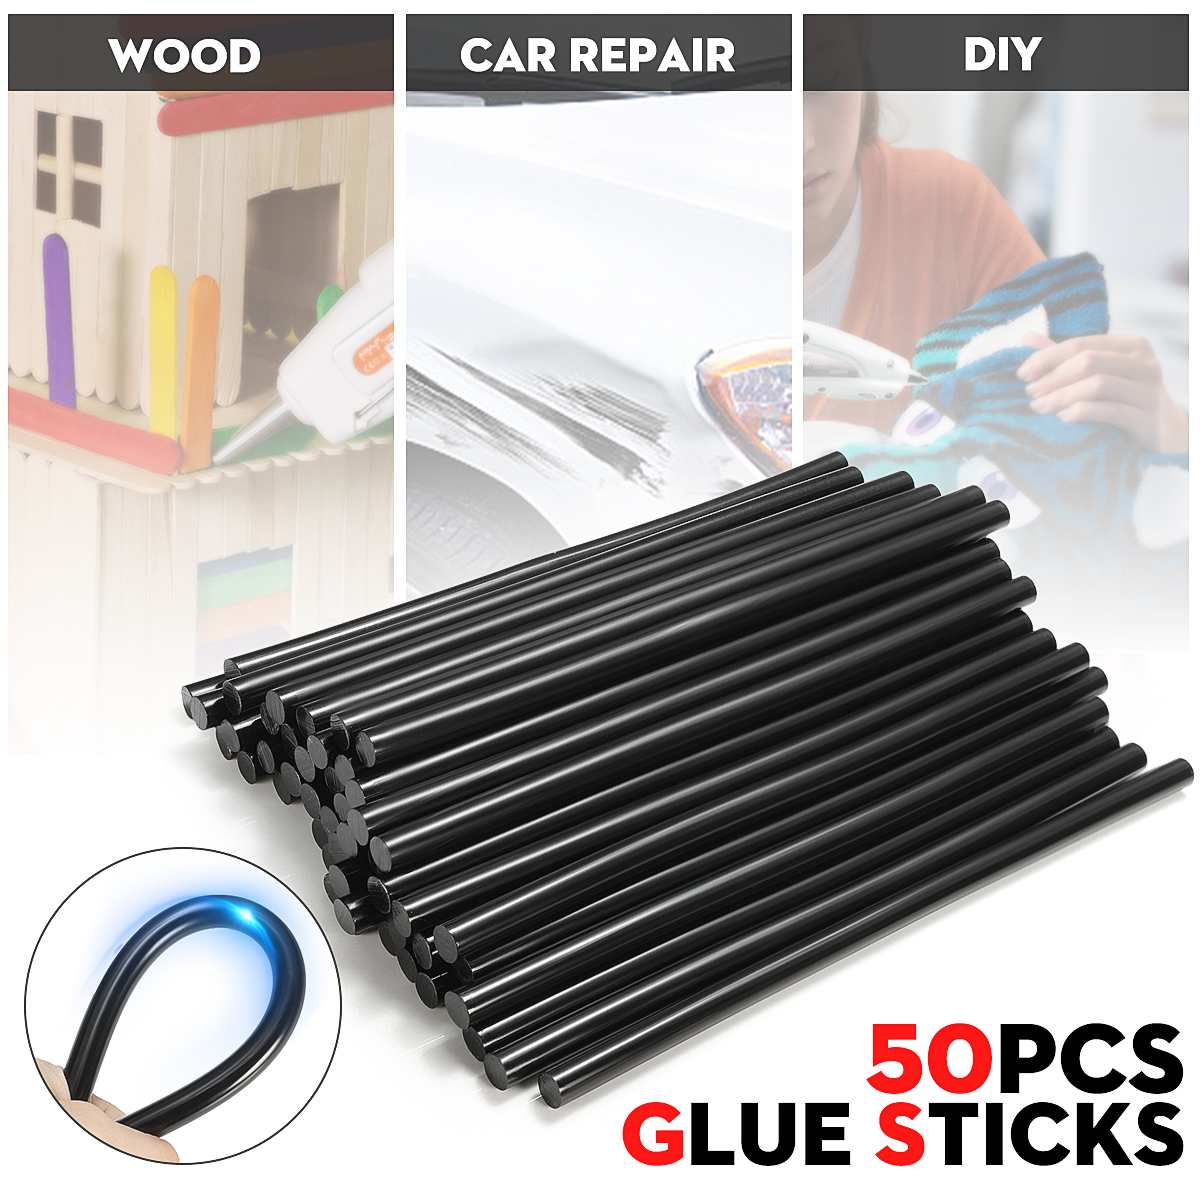 50PCS 11X270MM Black Hot Melt Glue Crafting Models Repair Sticks for Glue-gun Power Tool Accessory DIY Paste Tools50PCS 11X270MM Black Hot Melt Glue Crafting Models Repair Sticks for Glue-gun Power Tool Accessory DIY Paste Tools